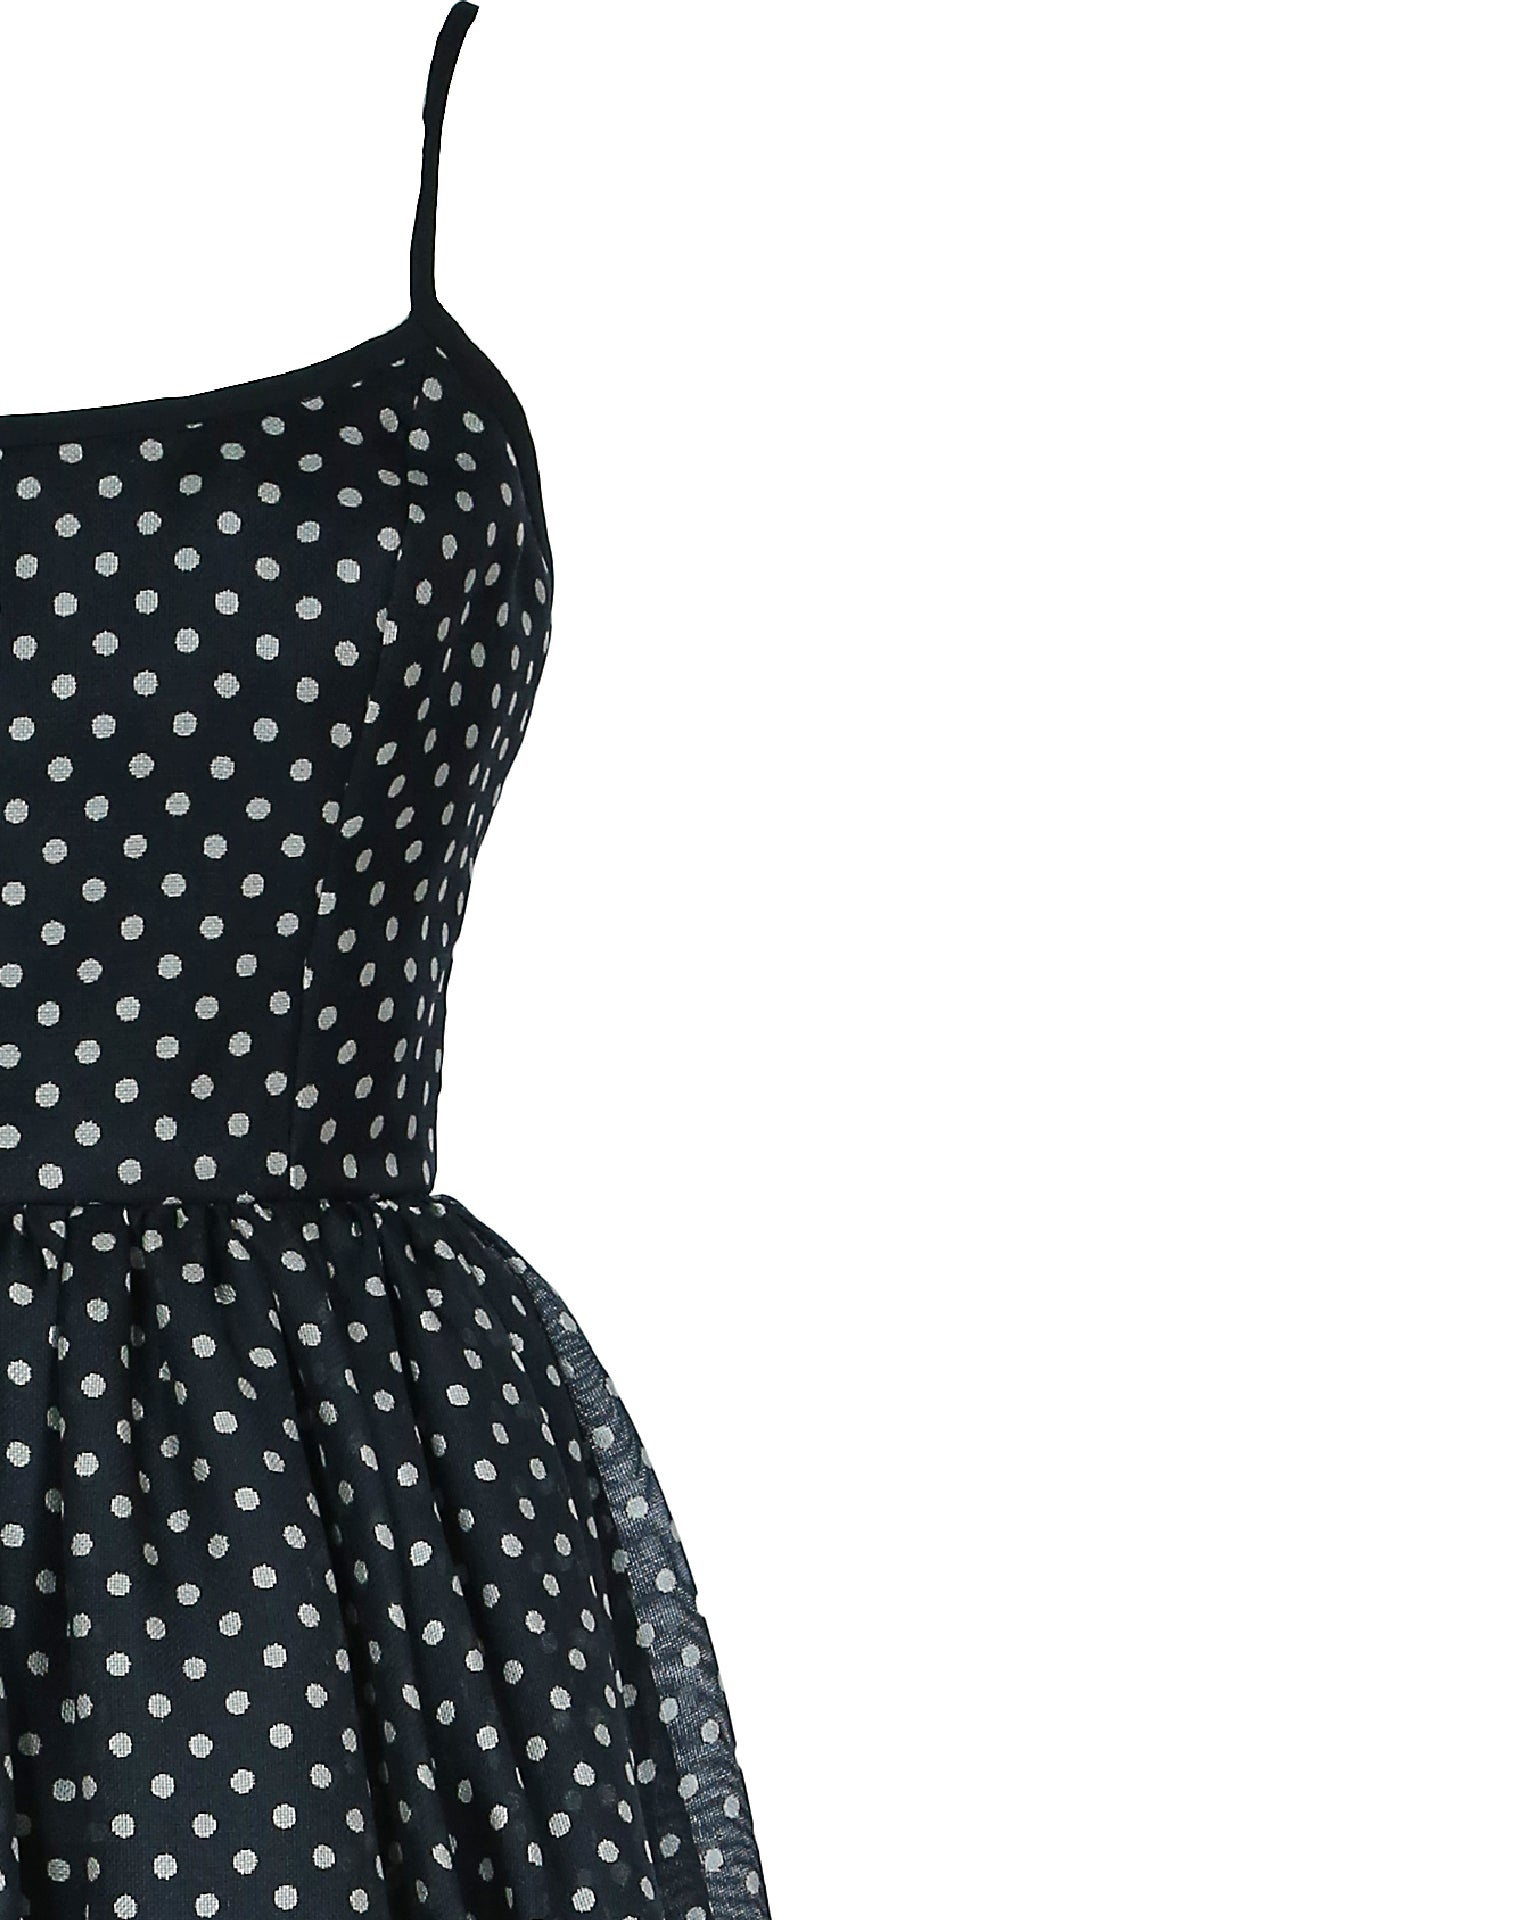 Ellen Tracy/ Linda Allard 100% Silk Black Polka Dot Dress Size 38 (EU)